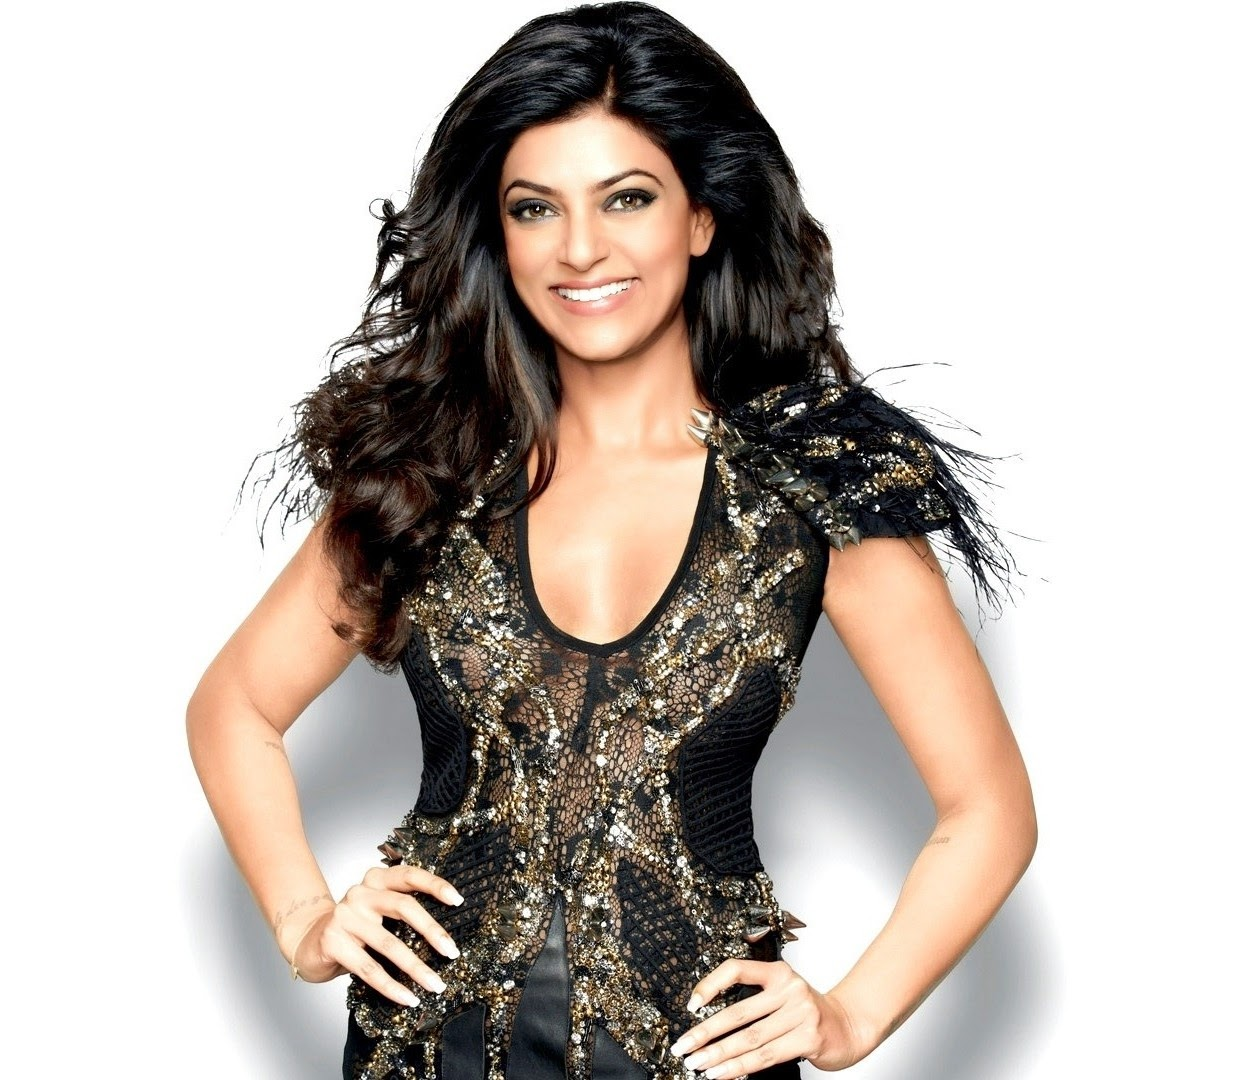 Cool Stylish Girl Hd Wallpaper Sushmita Sen Hd Wallpaper All 4u Wallpaper